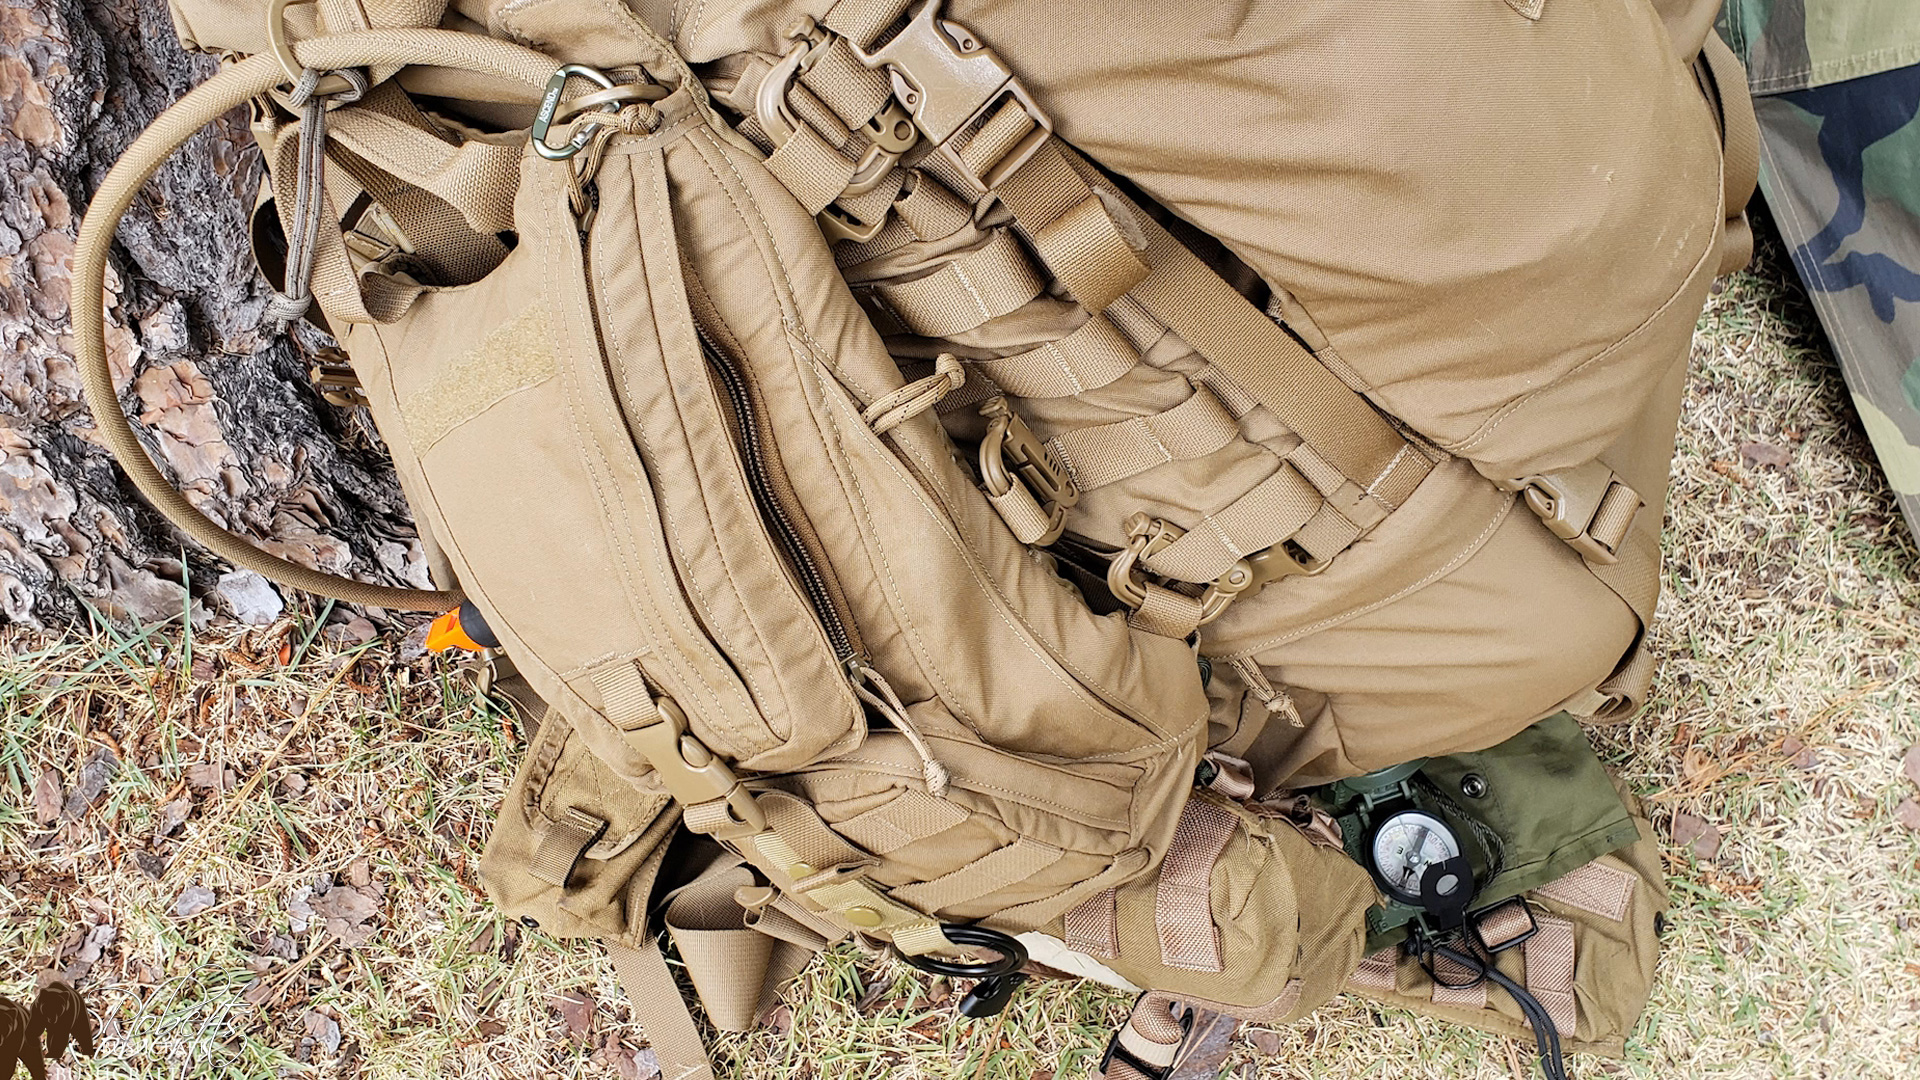 USMC FILBE Hydration Carrier attached to the FILBE main pack